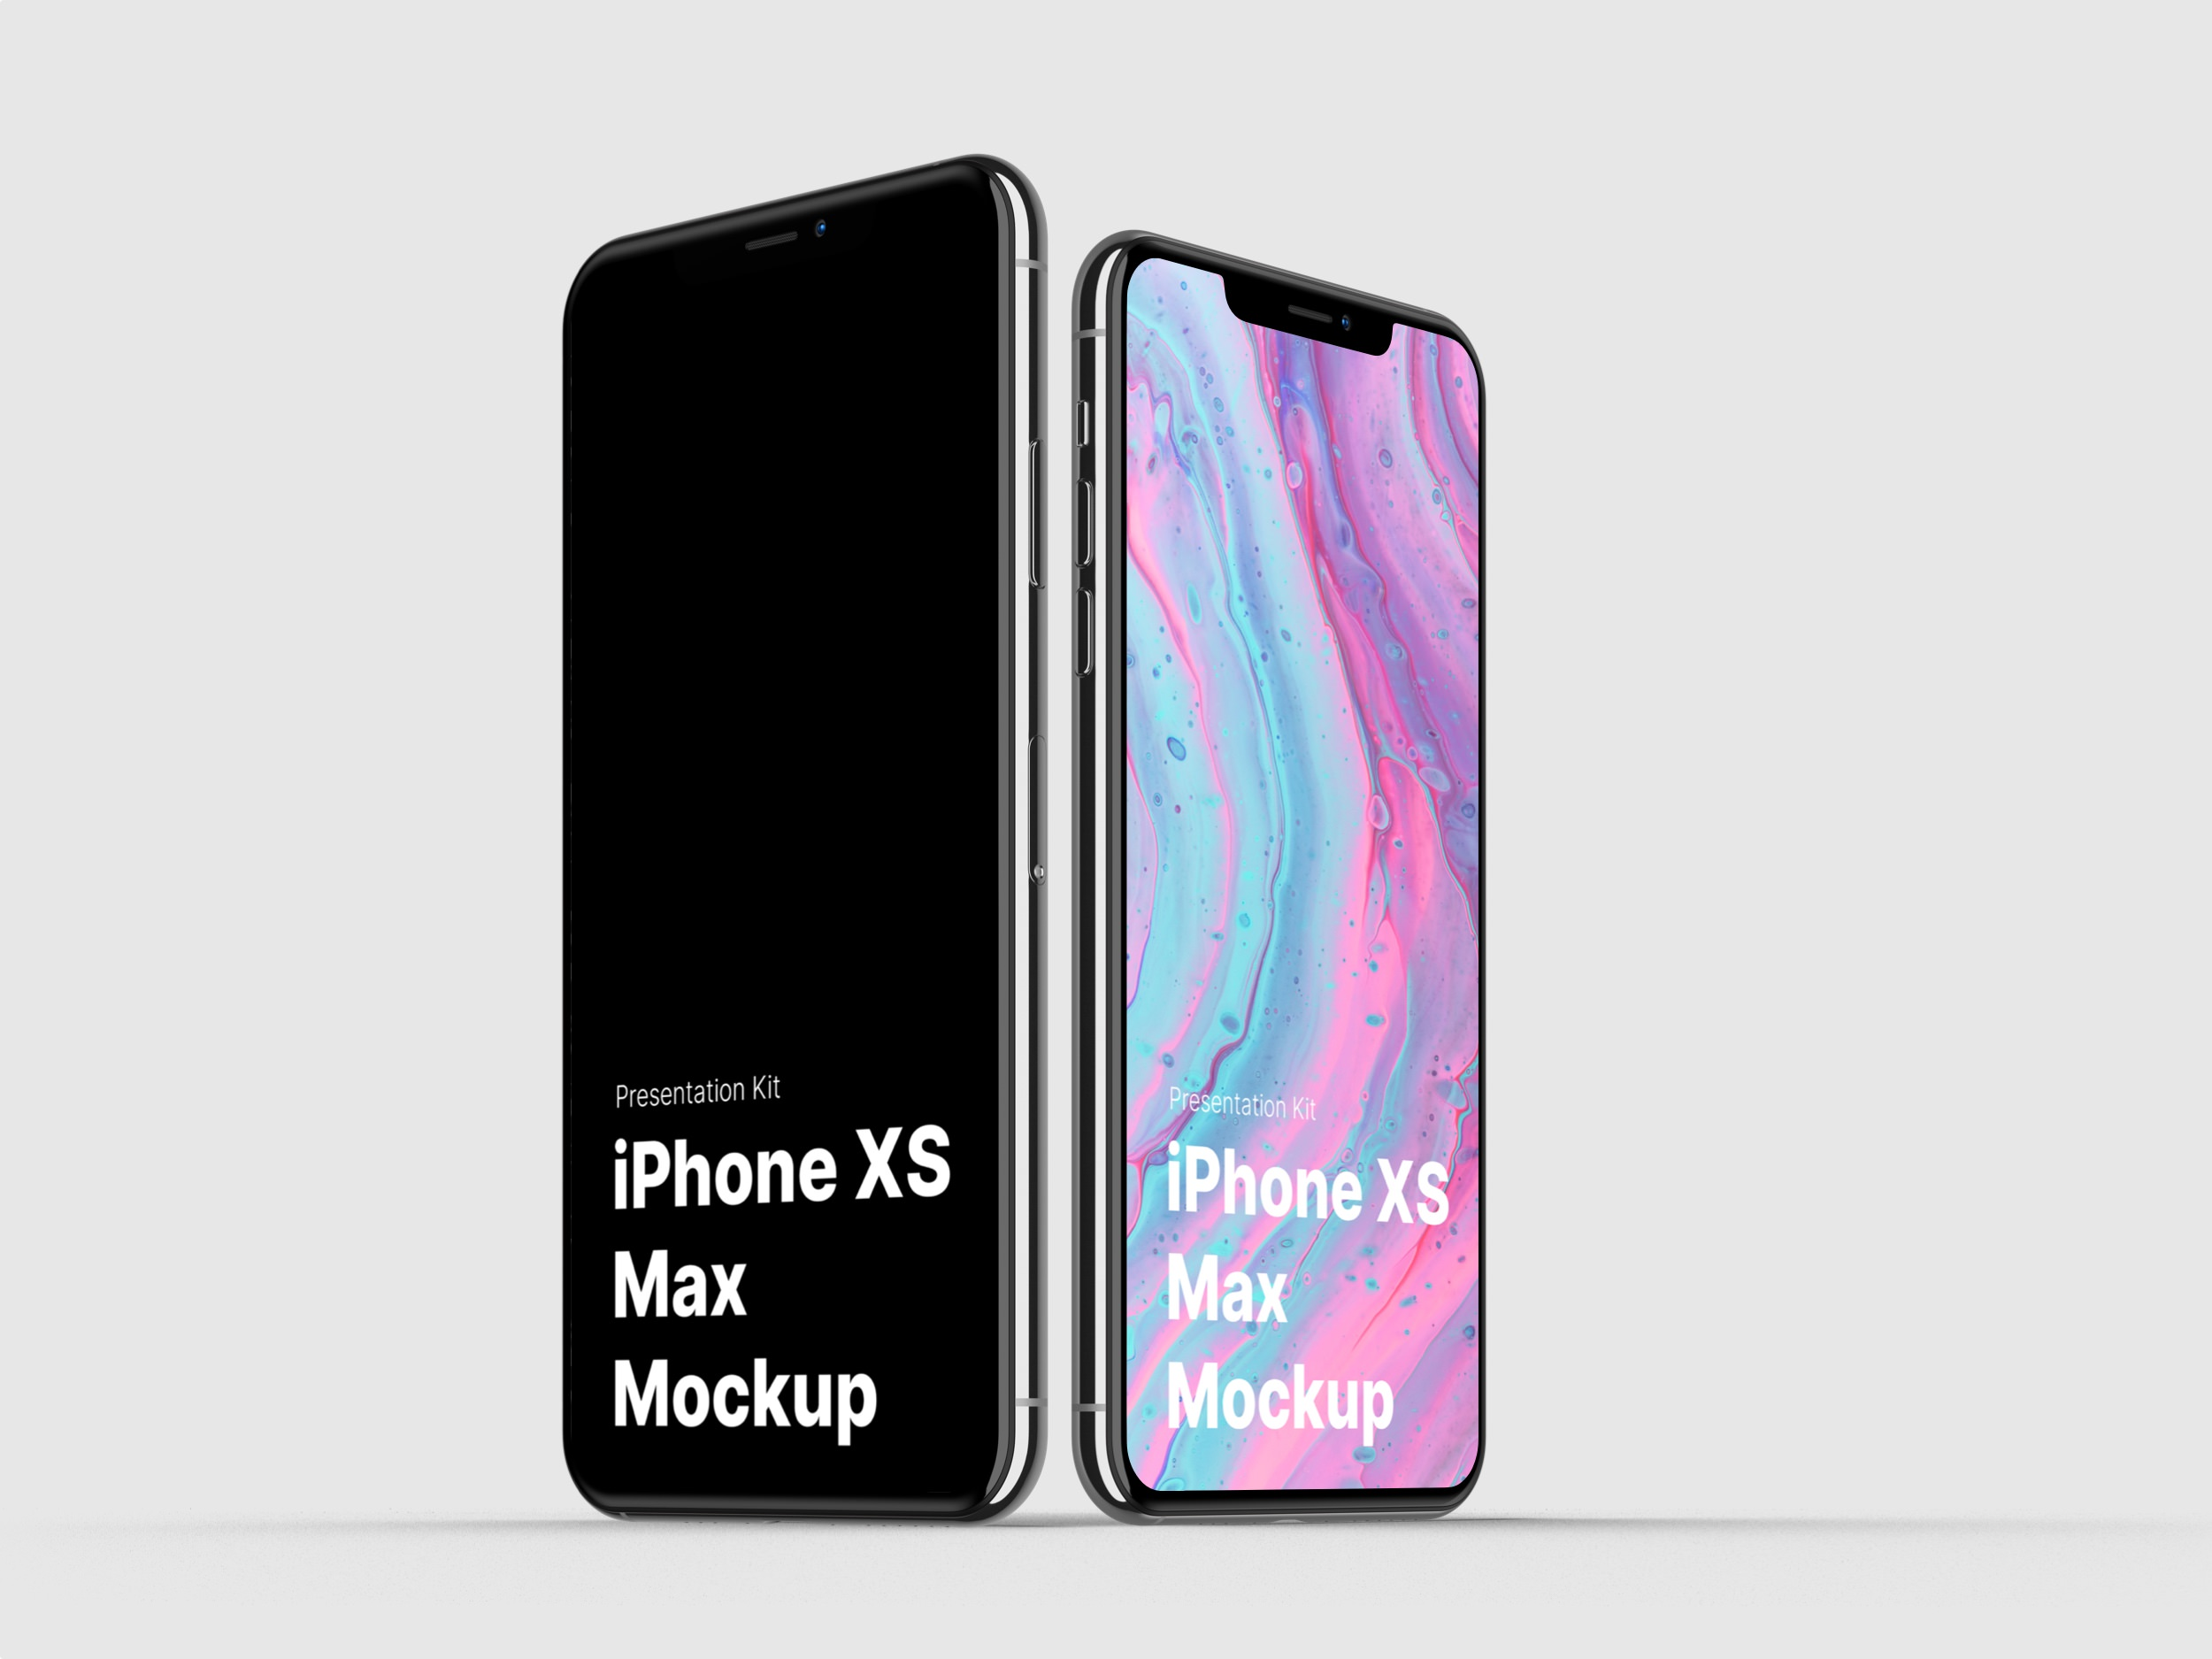 iPhone XS Max Mockups for Sketch, Photoshop, Figma.